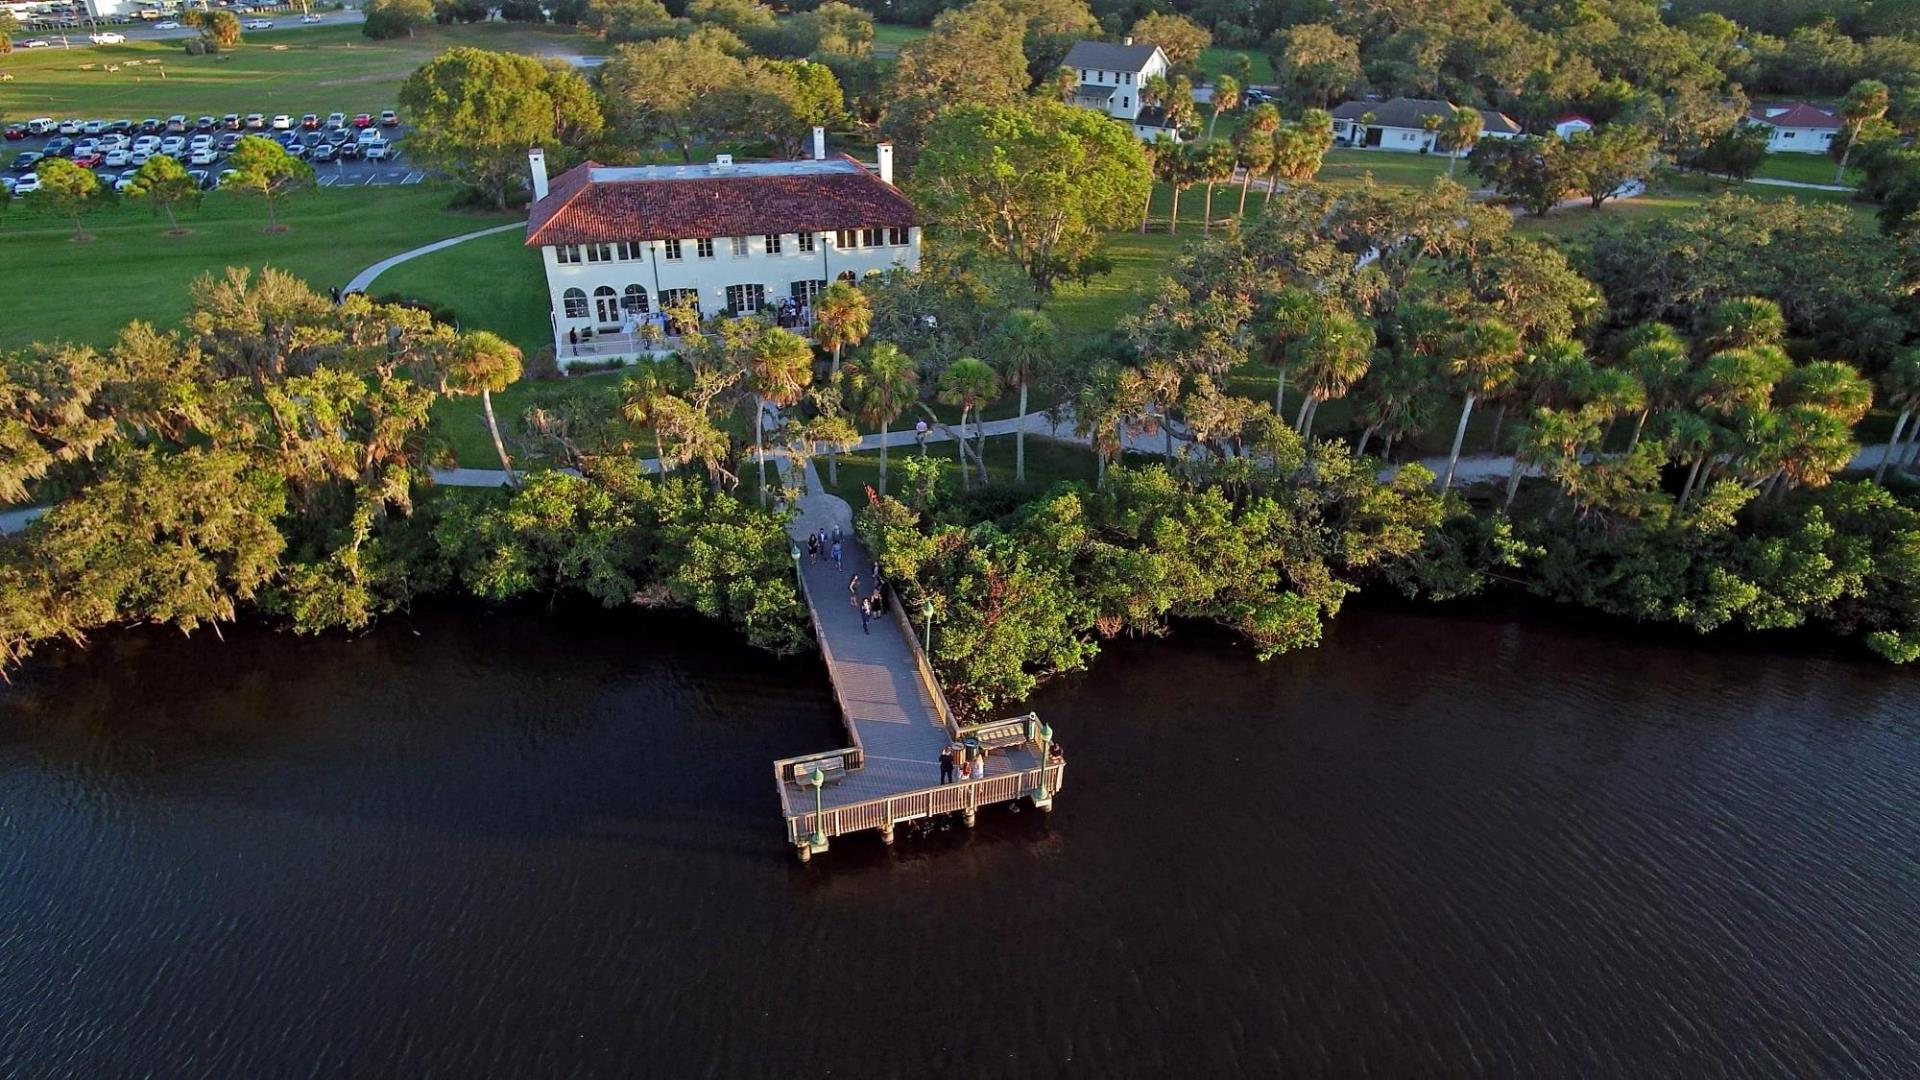 Aerial wedding photo of a wedding at the Phillippi Estate Park mansion, view from the back of the mansion